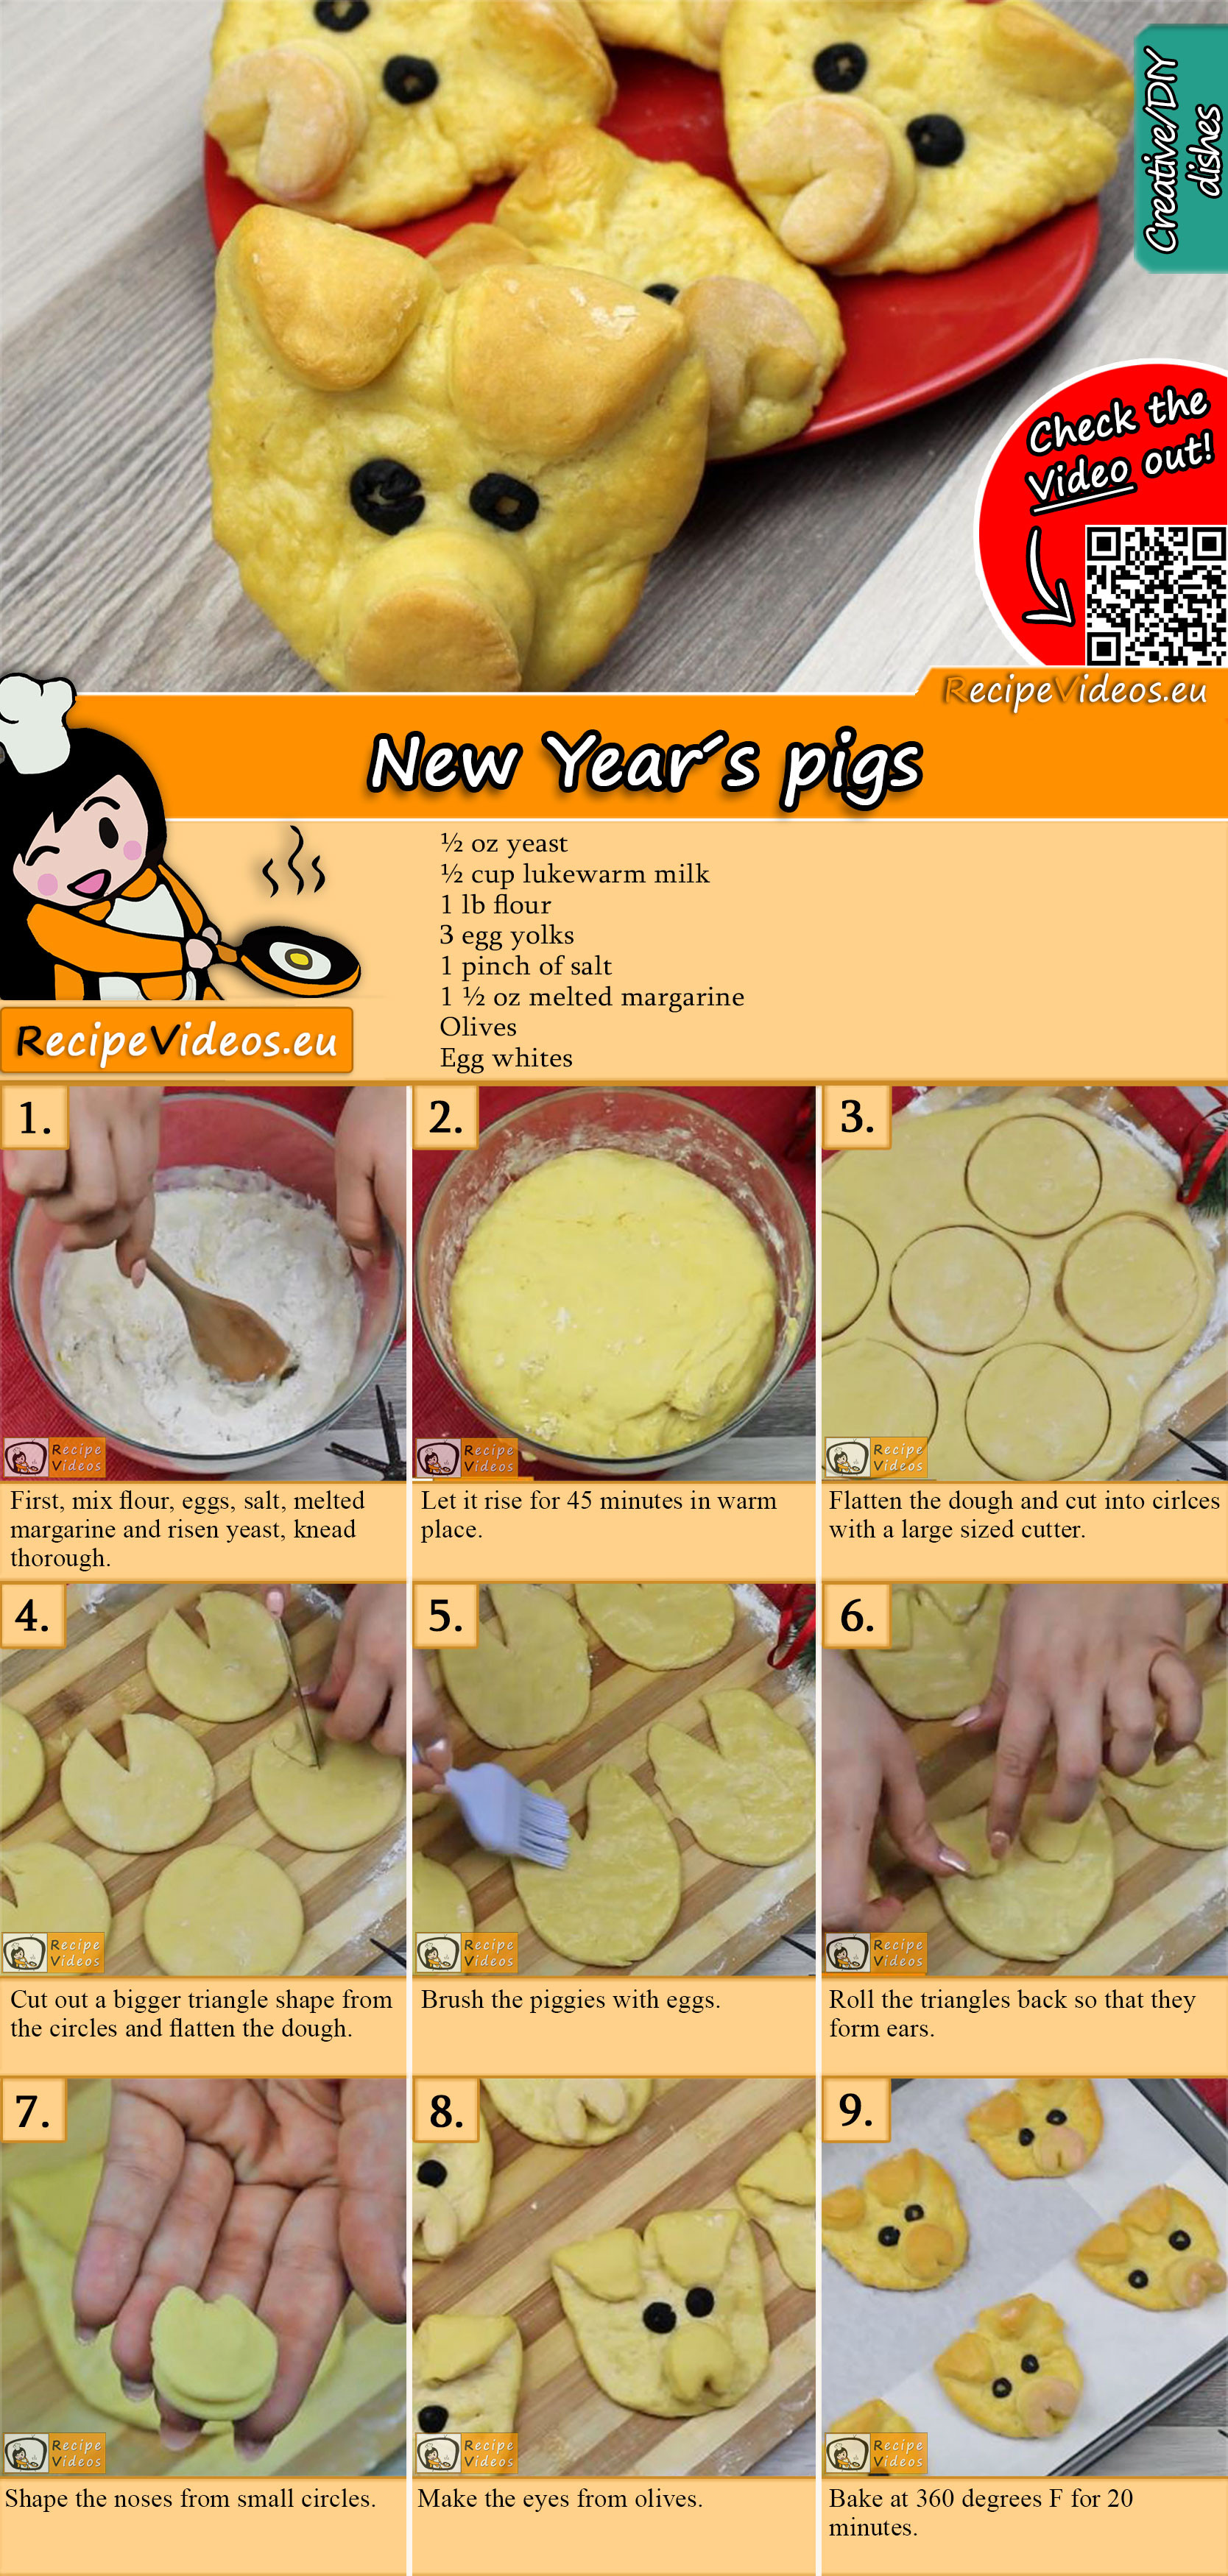 New Year's pigs recipe with video